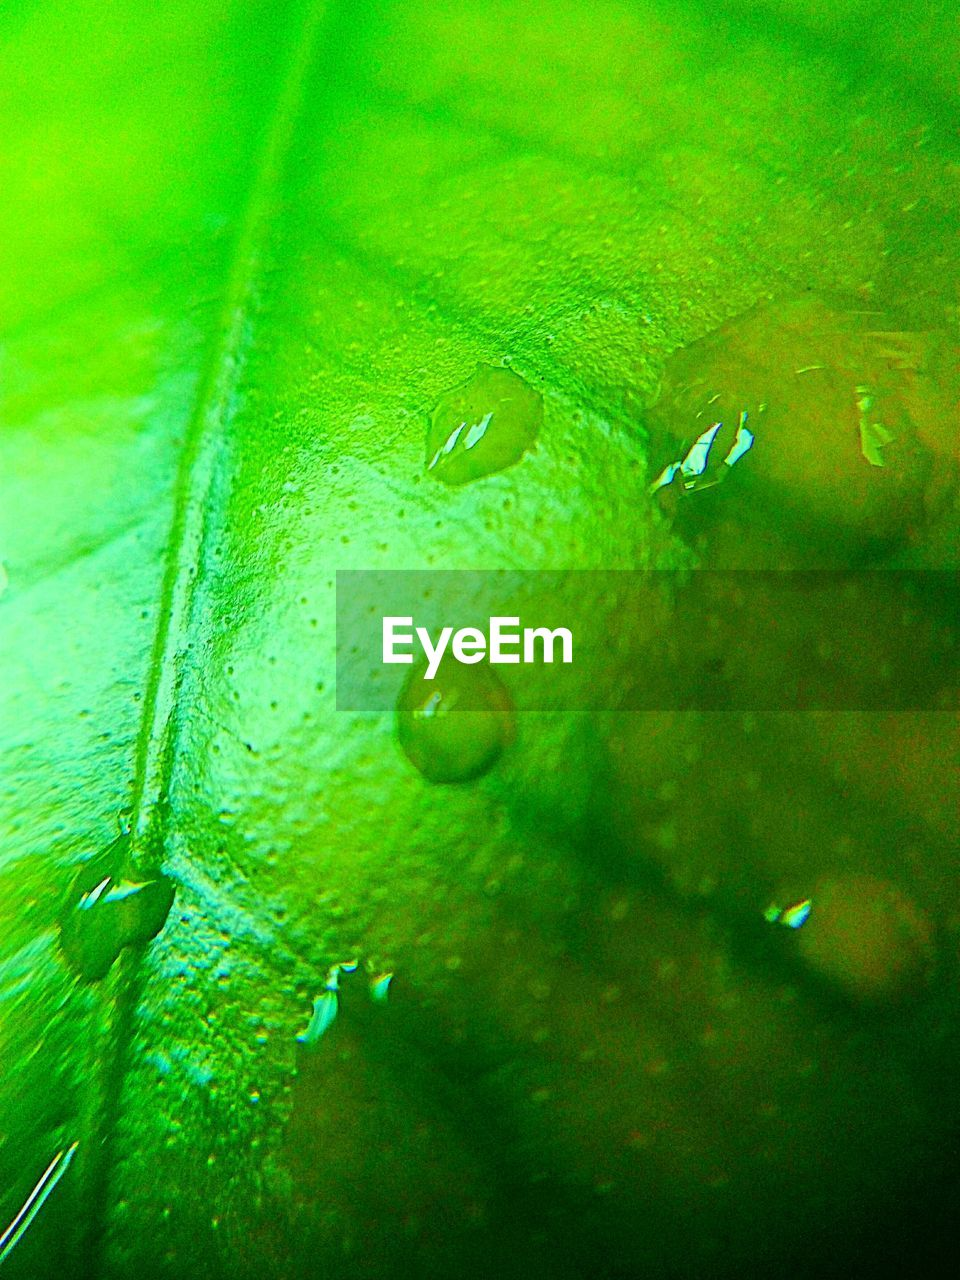 drop, water, green color, wet, nature, close-up, raindrop, no people, leaf, full frame, freshness, beauty in nature, purity, underwater, backgrounds, fragility, animal themes, day, undersea, splashing droplet, outdoors